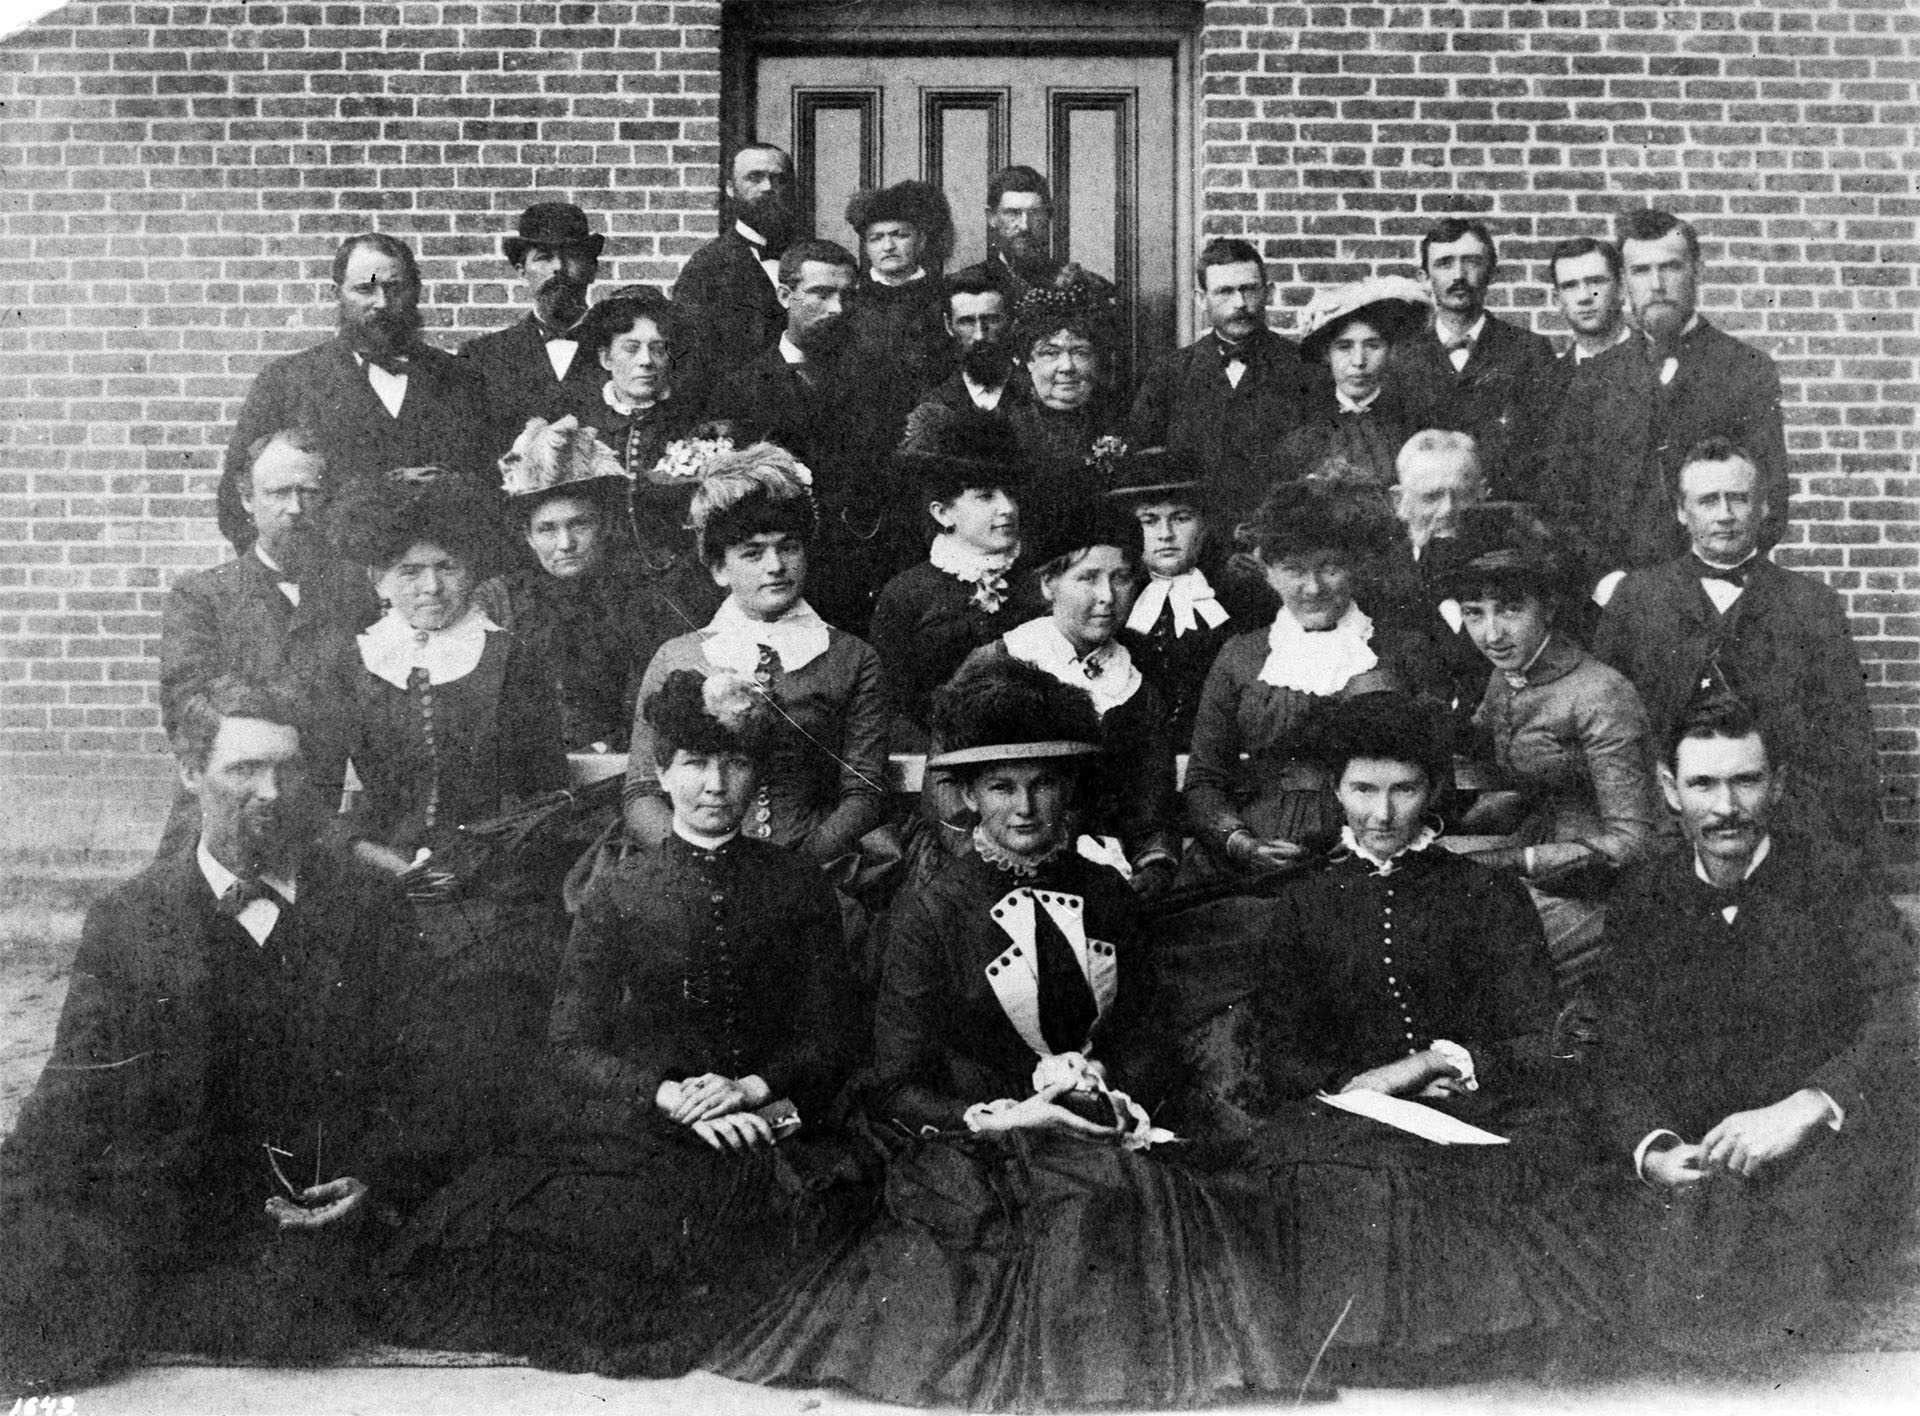 Students and faculty outside the State Normal School in 1884